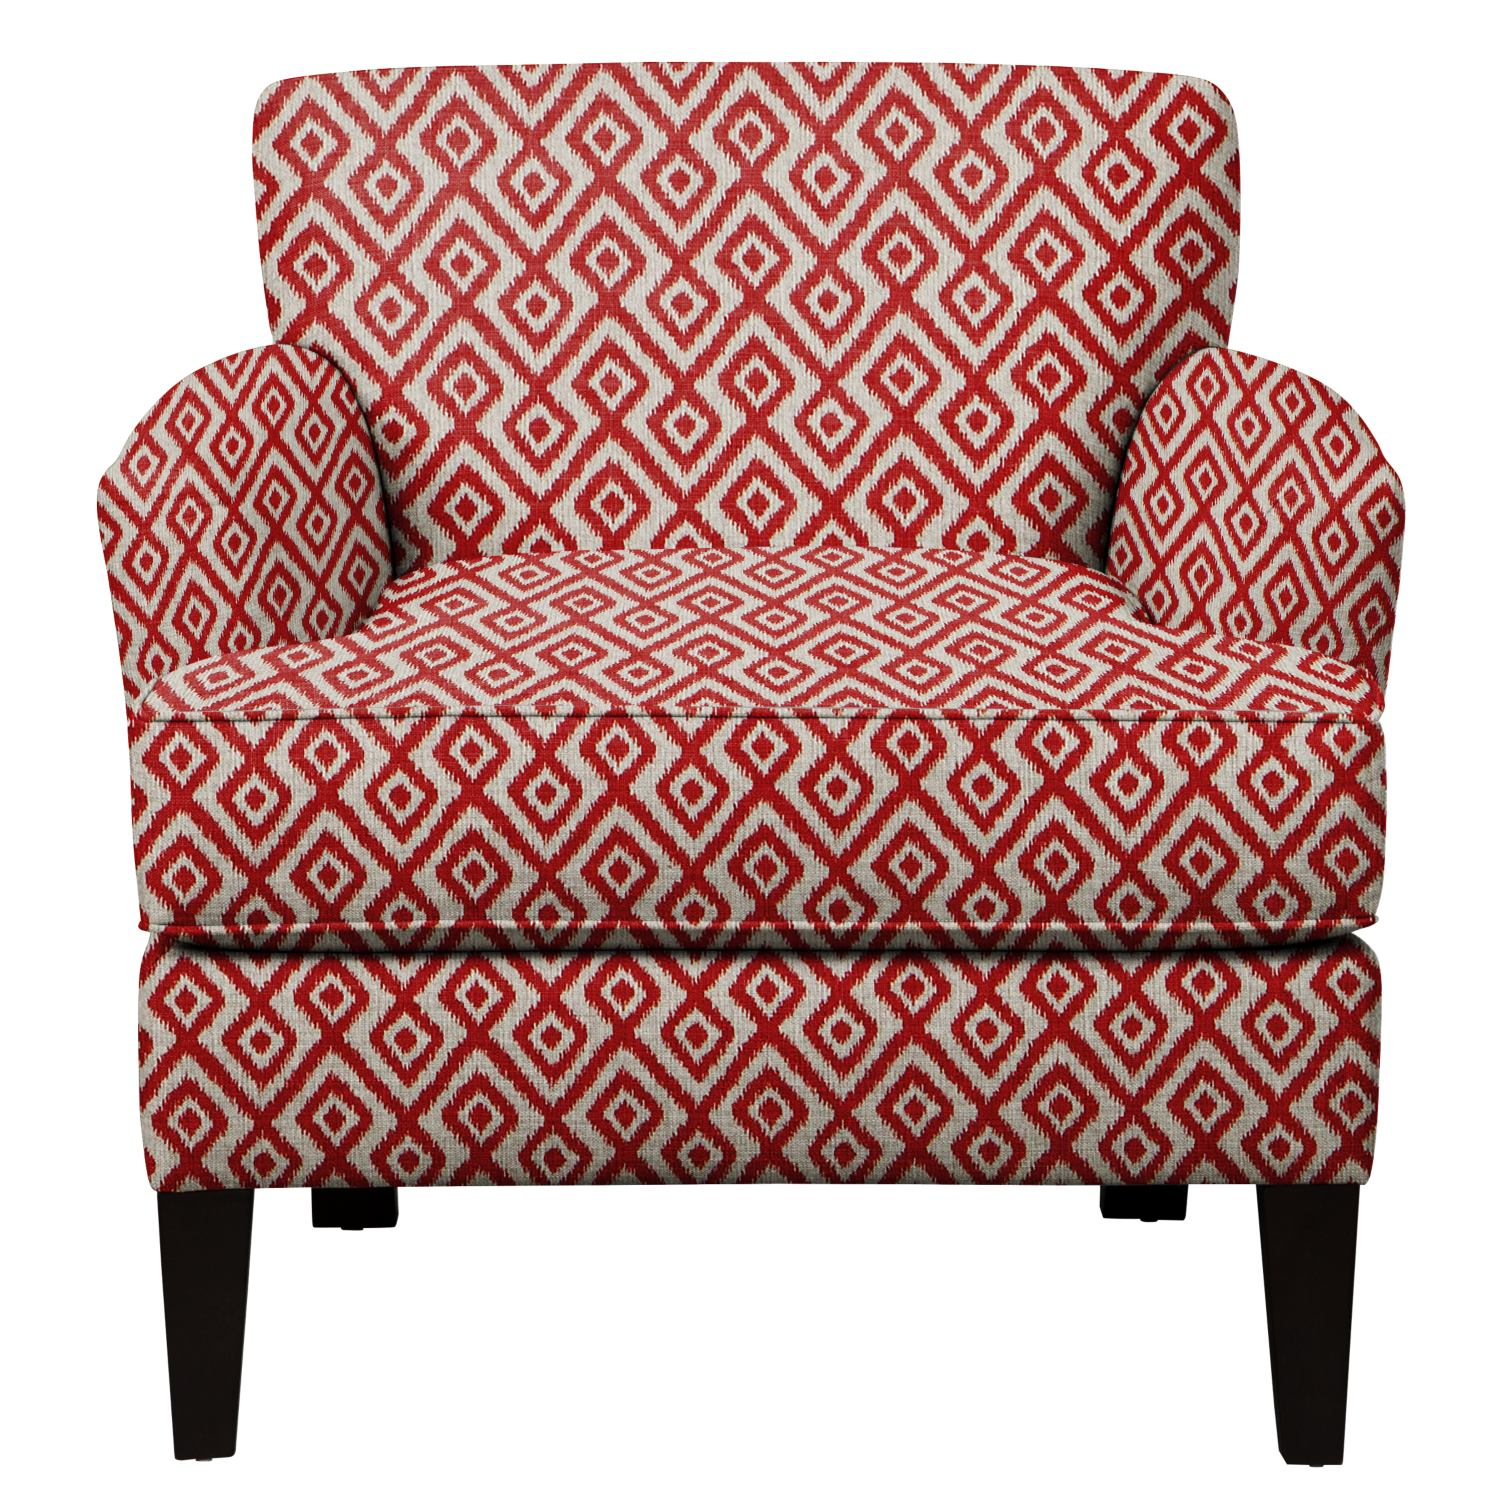 Marcus Chair w/ Tate Red Fabric